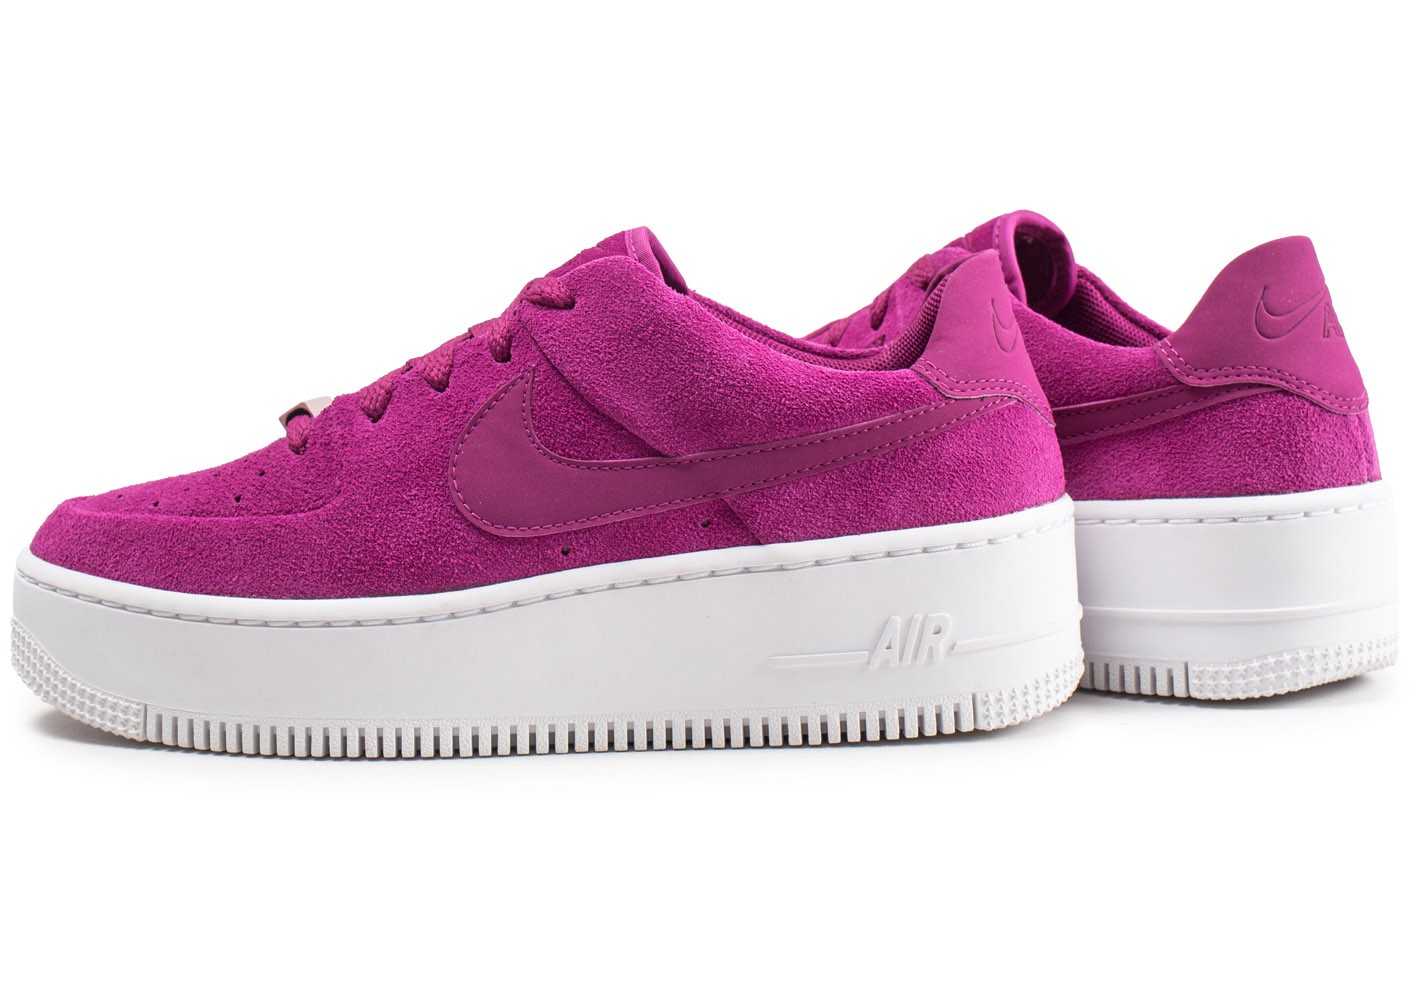 Nike Air Force 1 Sage Low rose fuchsia femme - Chaussures ...